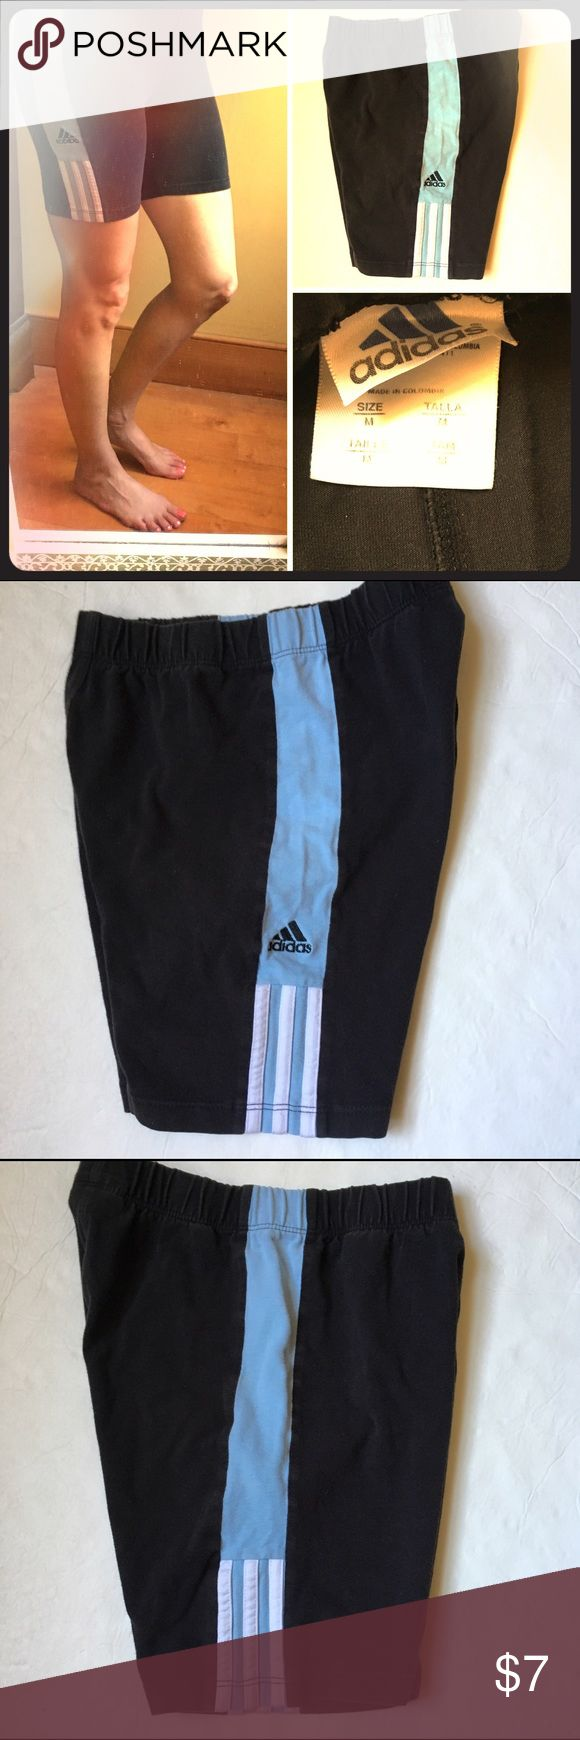 ⭐️Adidas black spandex shorts Good condition black spandex shorts with light blue stripes on sides of leg. adidas Shorts